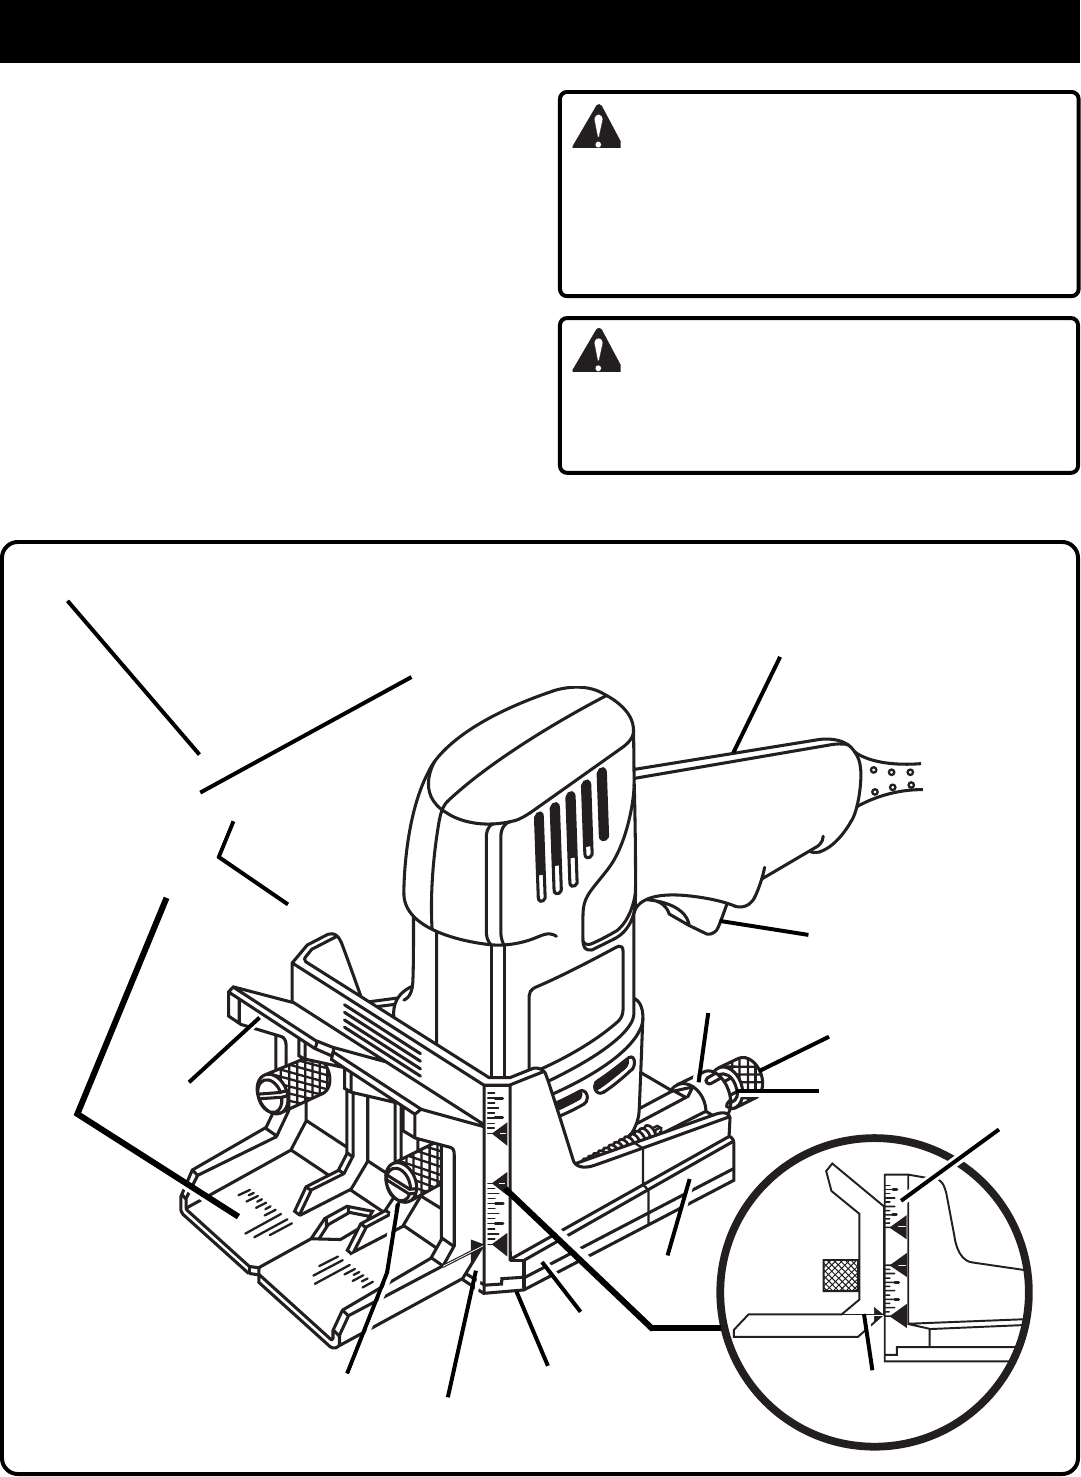 Page 8 of Ryobi Biscuit Joiner DBJ50 User Guide